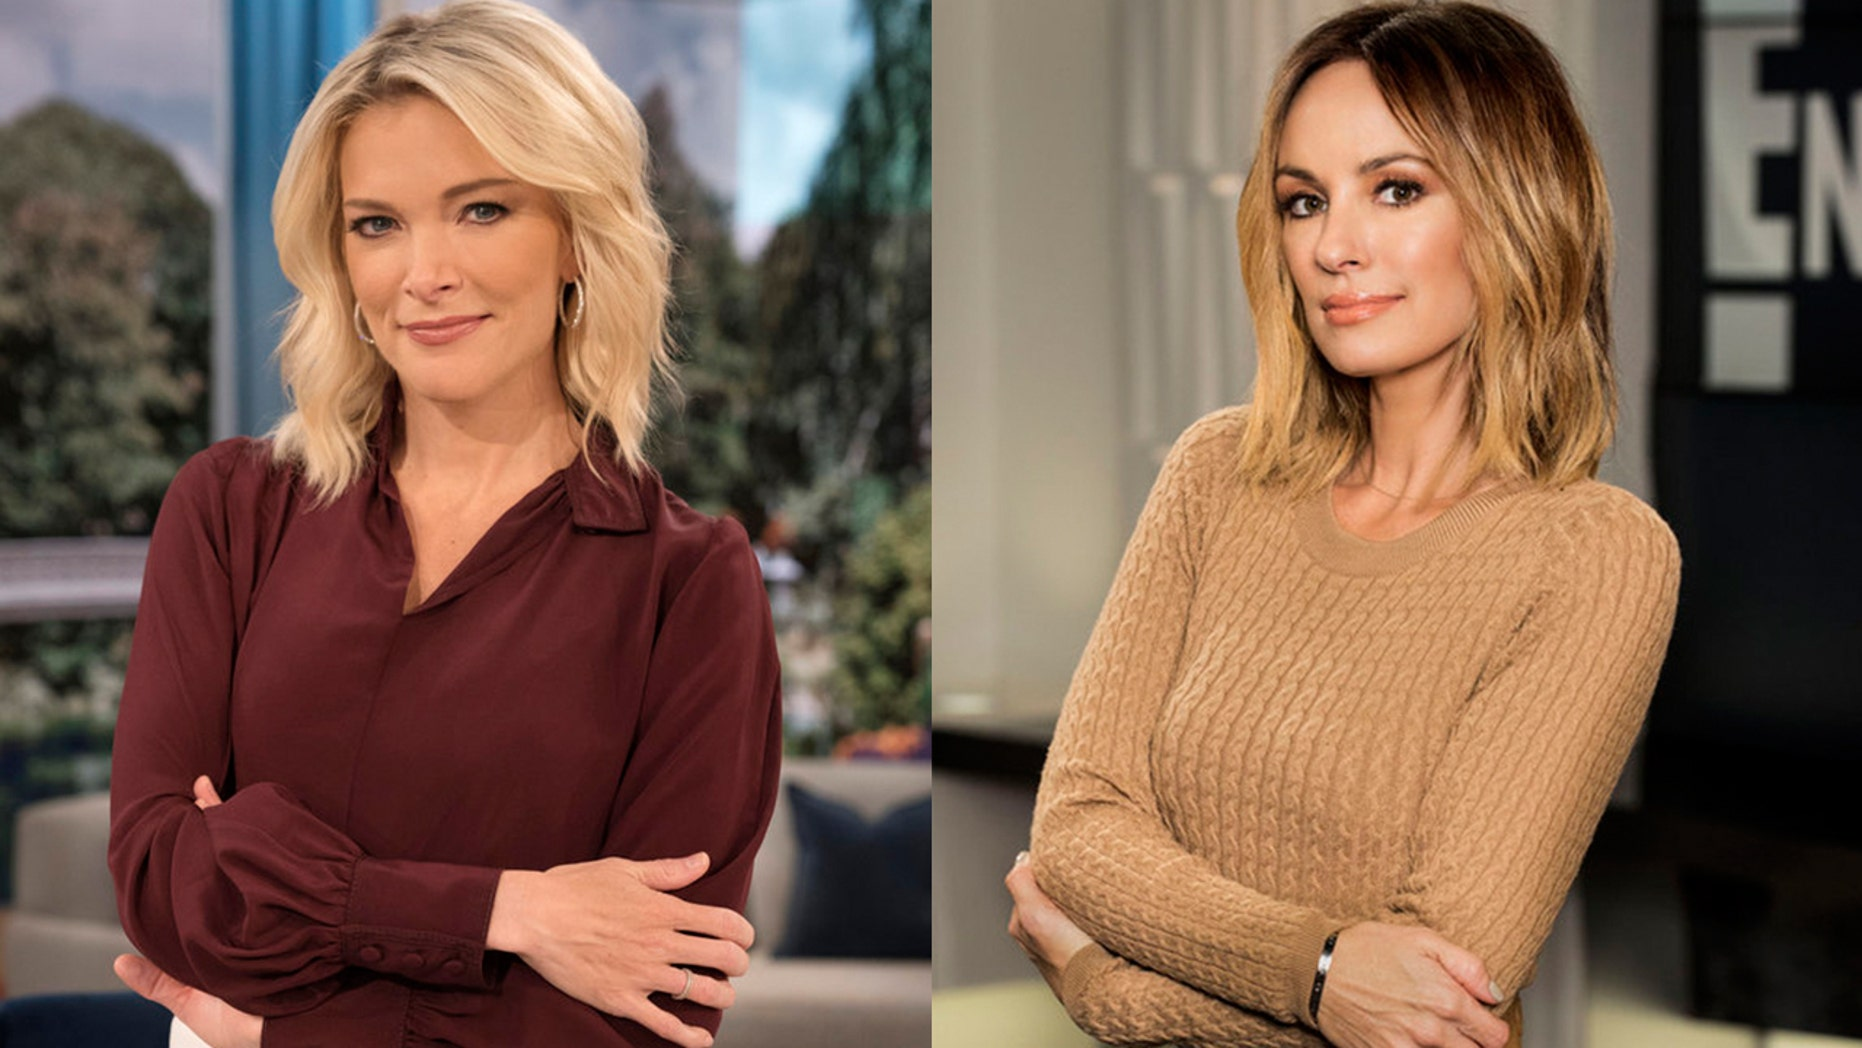 "NBC star Megyn Kelly has tried to book former ""E! News"" host Catt Sadler, according to the New York Post."